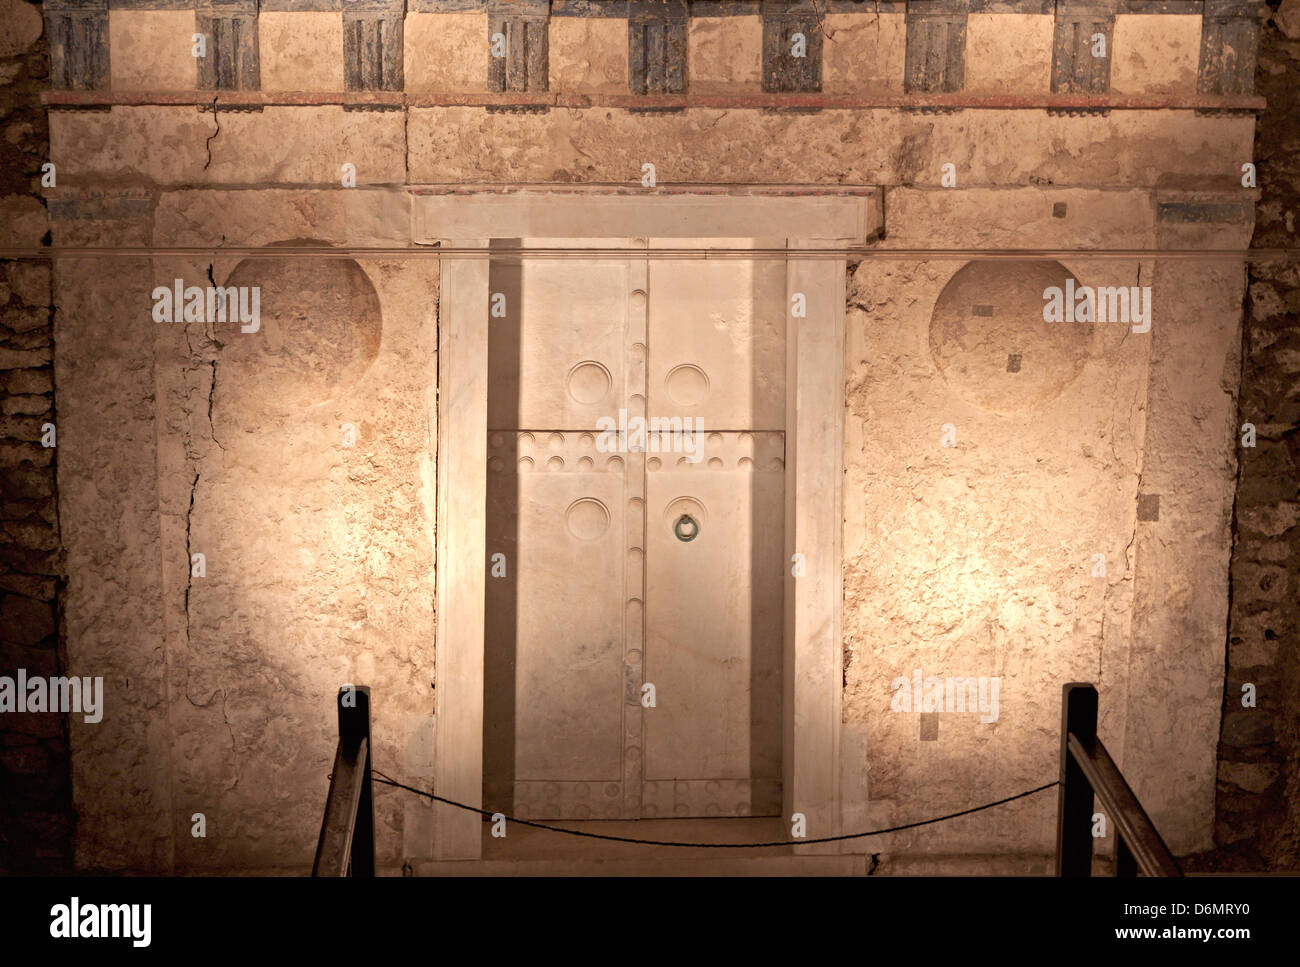 Ancient Macedonian tomb of king Philip the second found at Vergina (ancient Aigai) in Greece - Stock Image